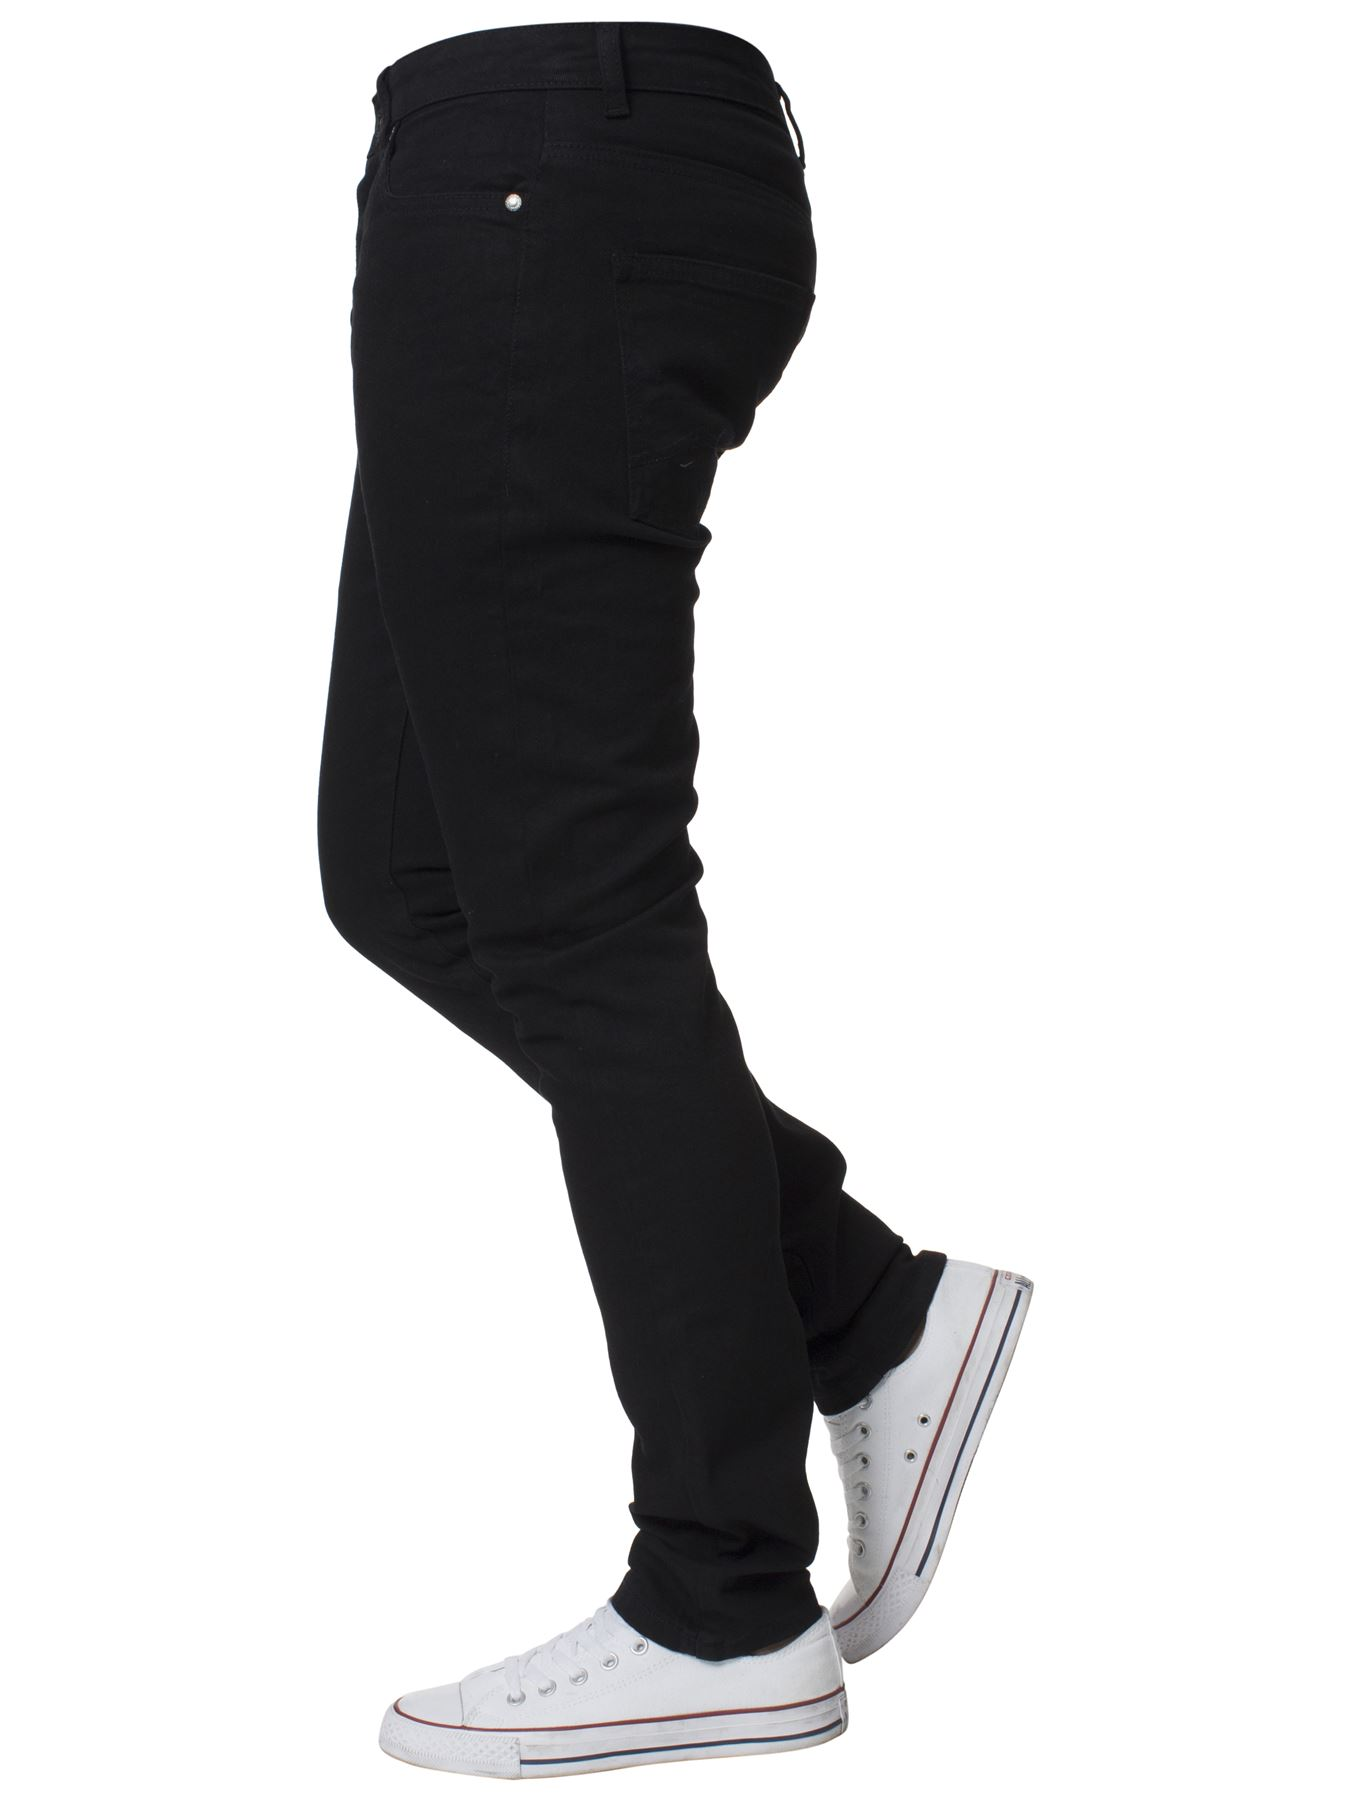 Kruze-Mens-Skinny-Stretch-Flex-Denim-Jeans-Slim-Fit-Trouser-Pants-Big-King-Sizes thumbnail 7